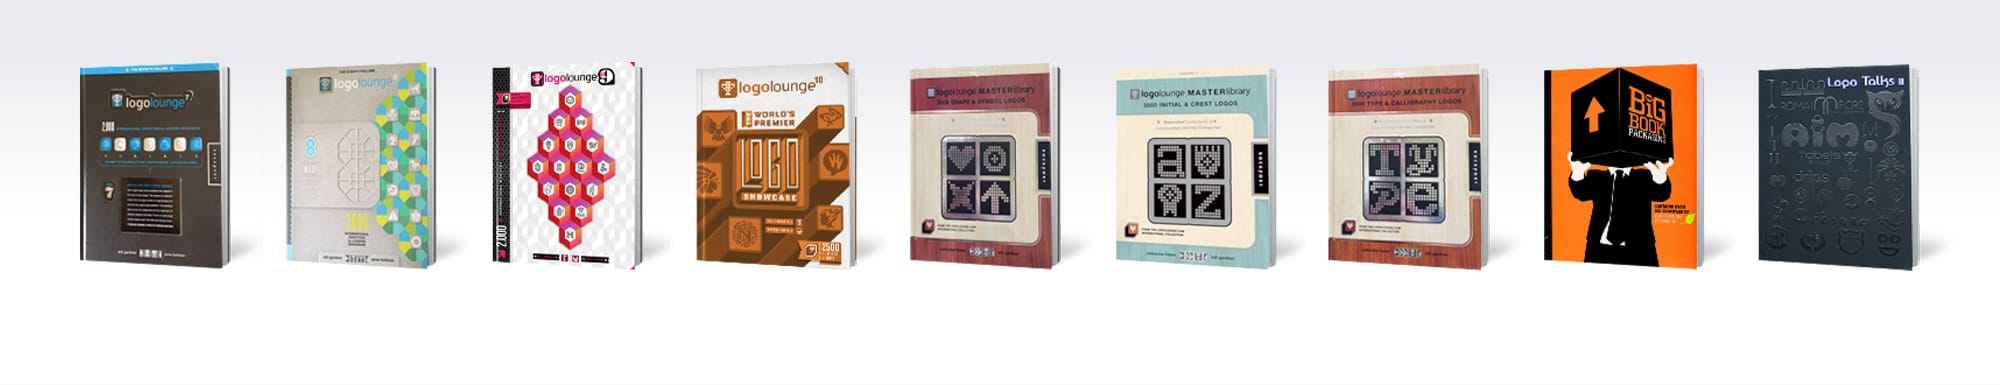 Awards & Design Book Publications